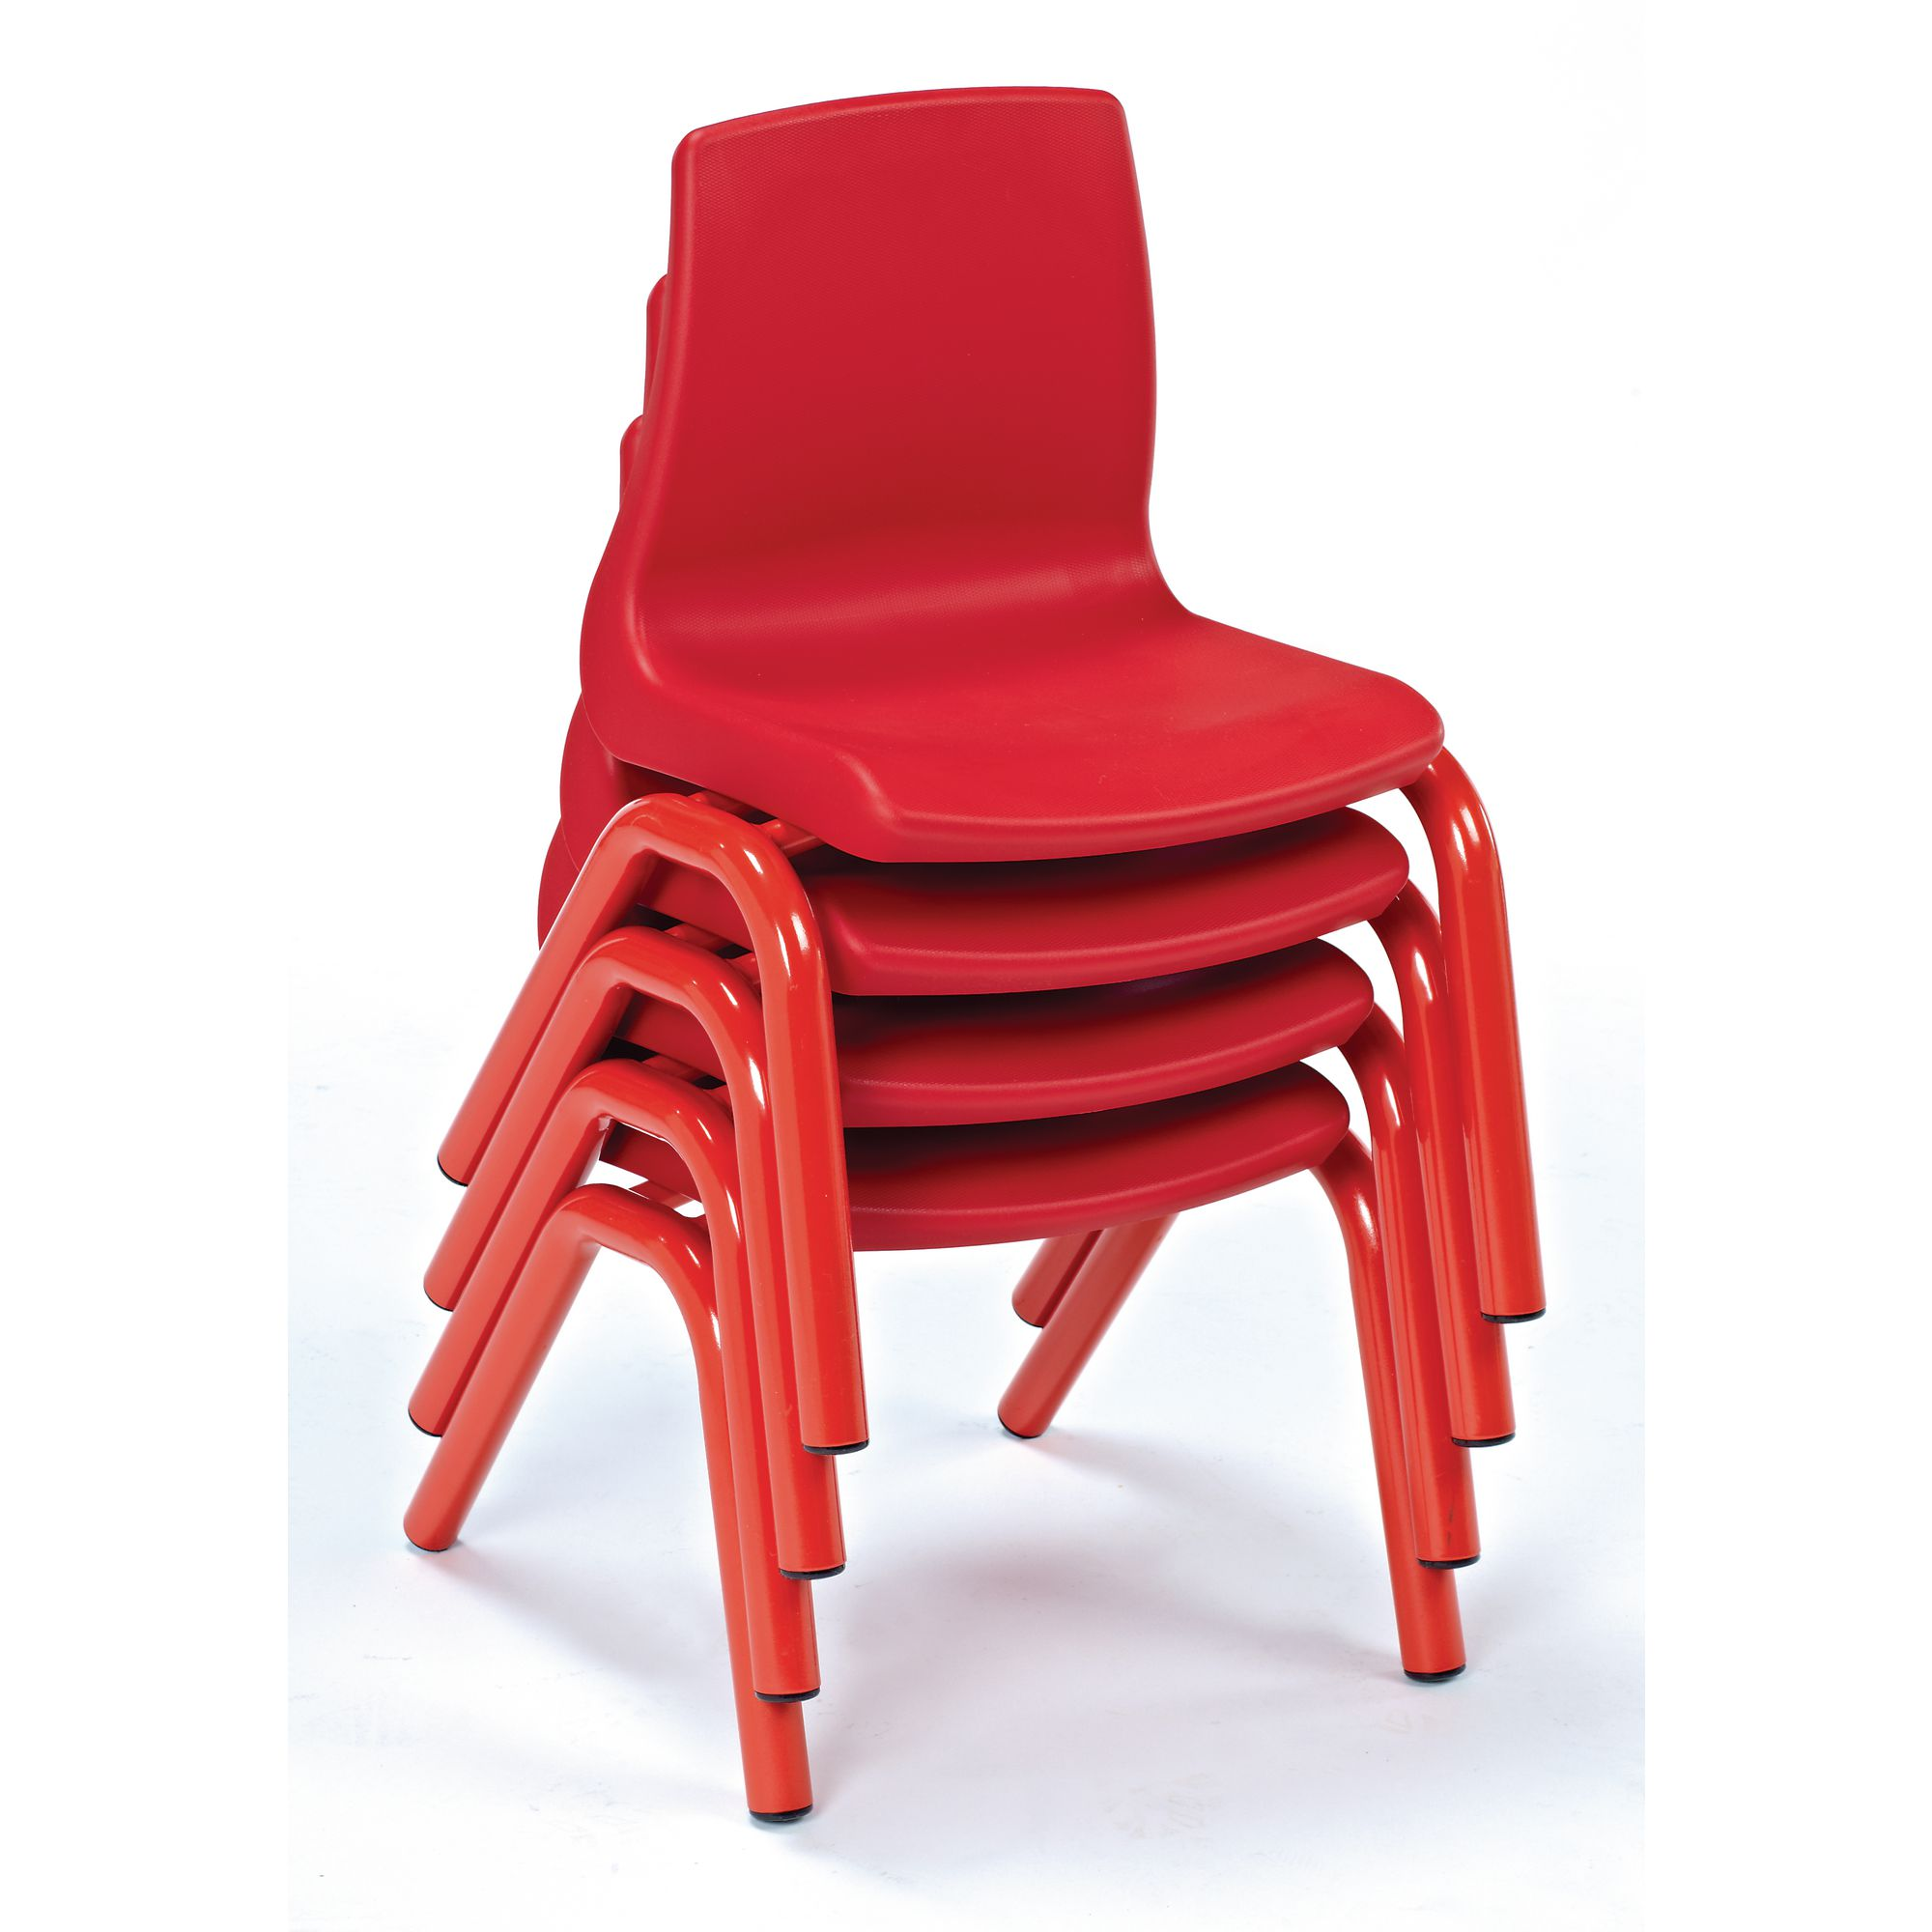 pre tables and chairs best gaming chair uk product gls educational supplies